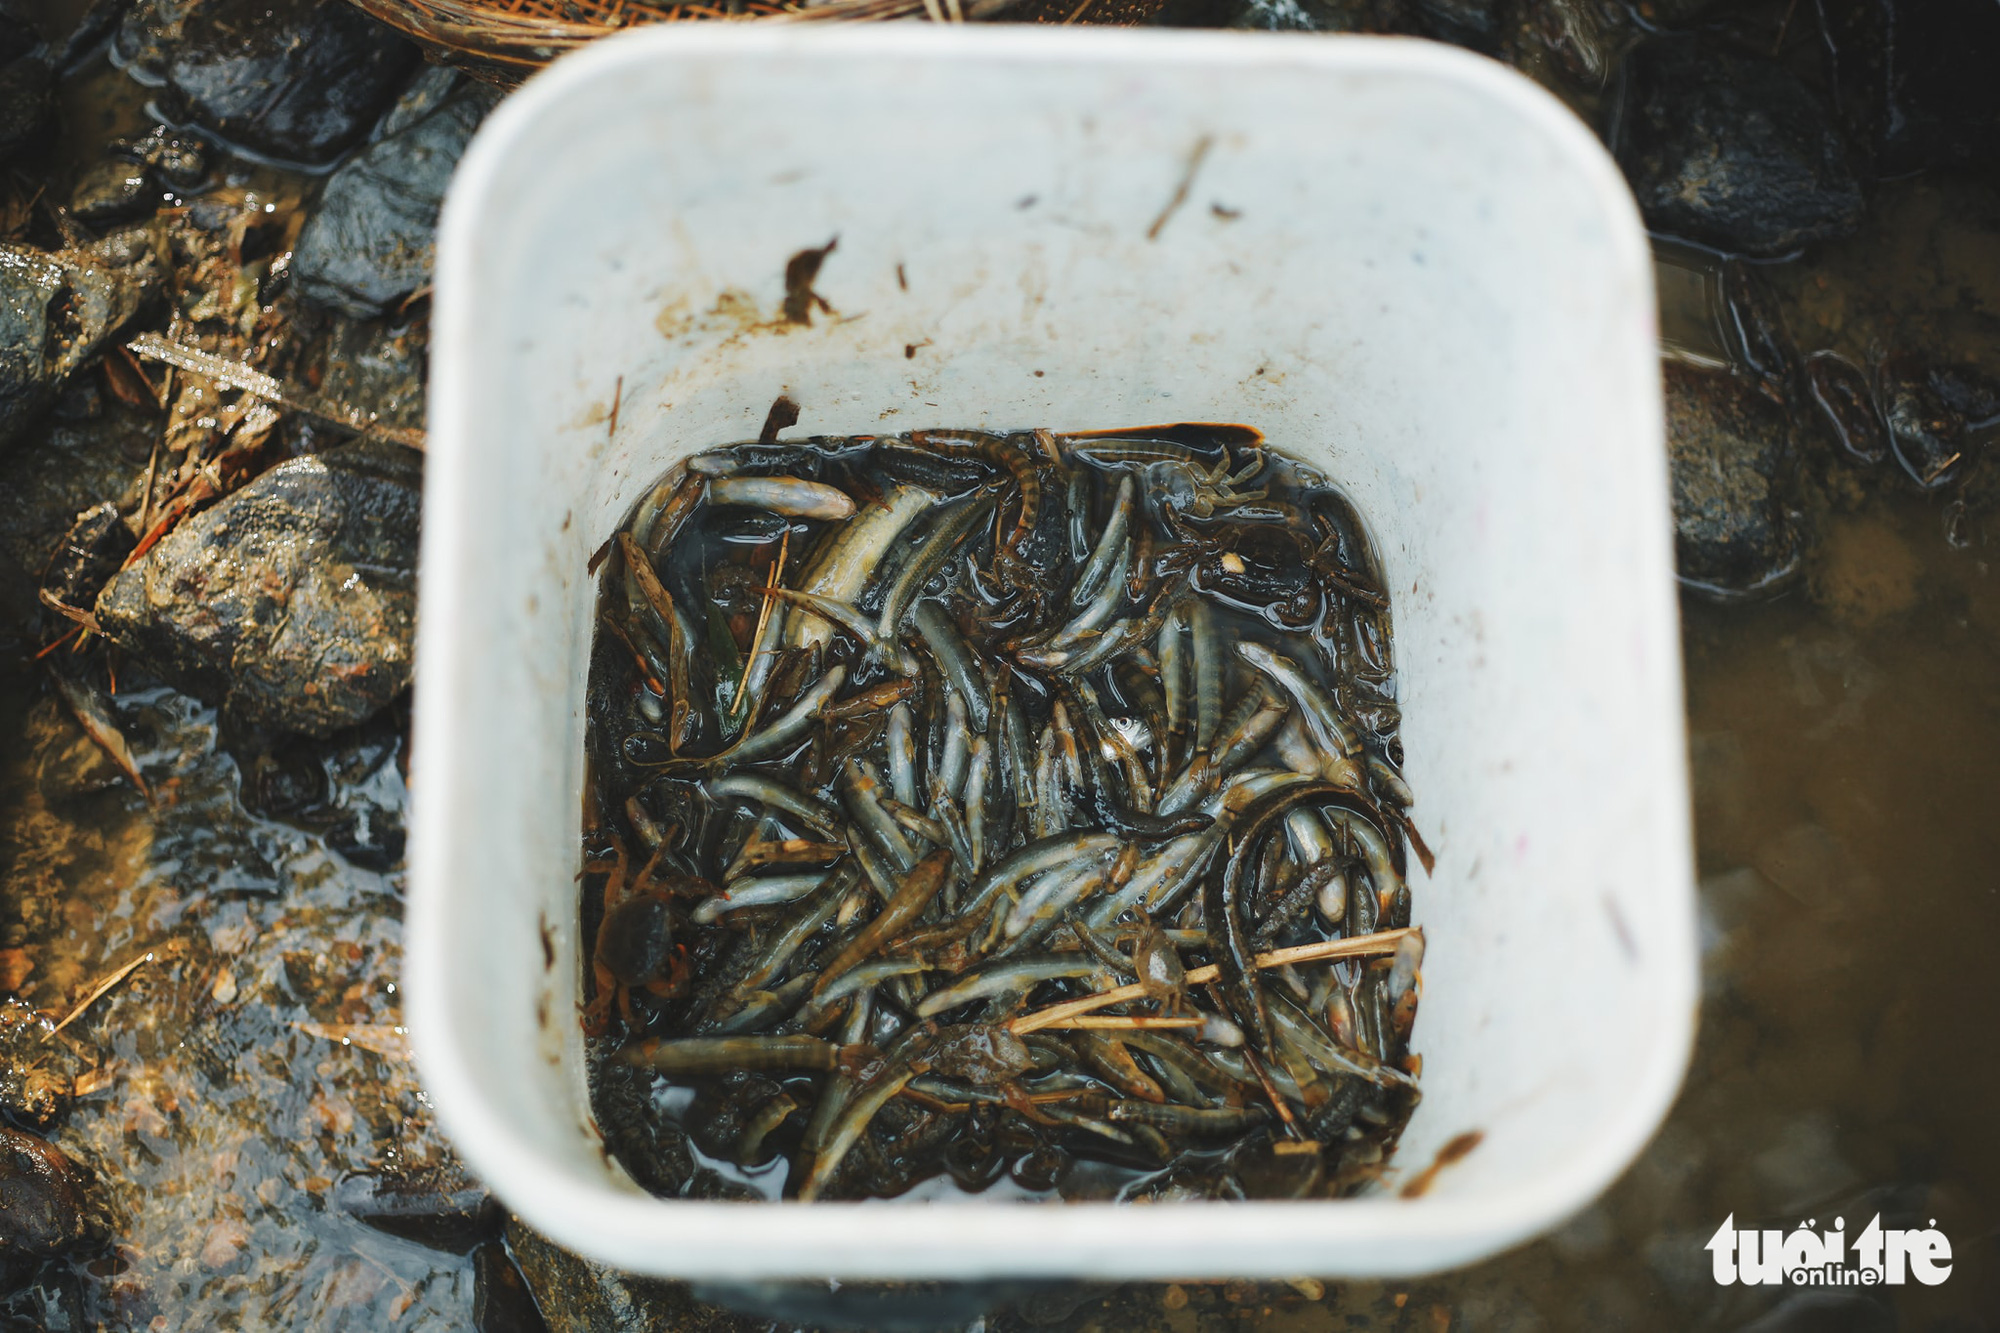 Eel freshly caught by the Tay people in Tong Pang Village sit in a bucket in Lam Thuong Commune, Luc Yen District, Yen Bai Province, Vietnam. Photo: Mai Thuong / Tuoi Tre